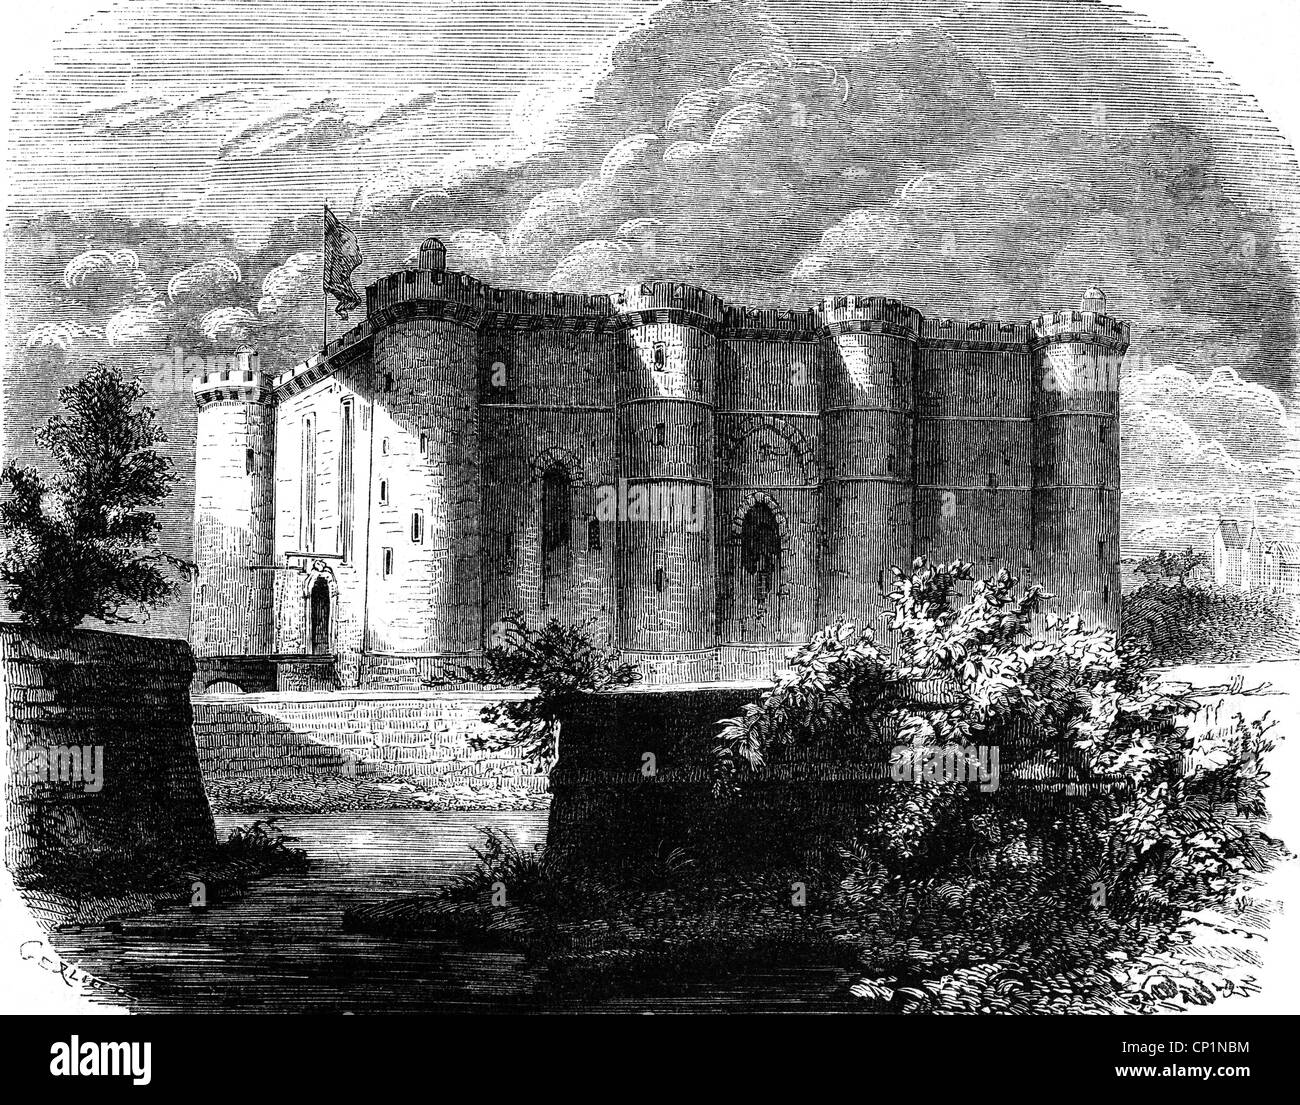 geography / travel, France, Paris, Bastille, exterior view in the 18th century, wood engraving, 19th century, Bastion - Stock Image